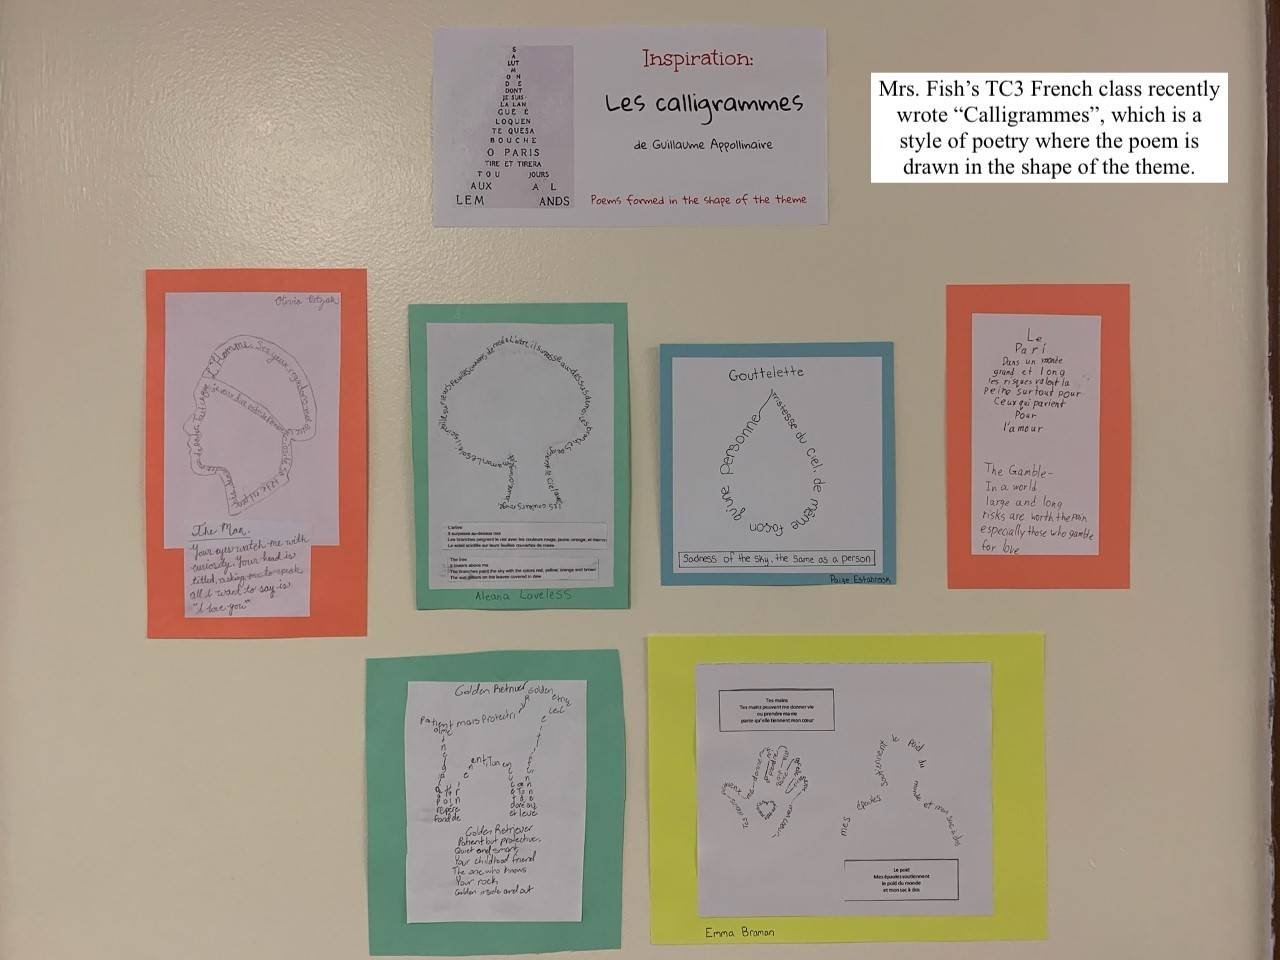 Photo of Mrs. Fish's TC3 class calligrammes projects